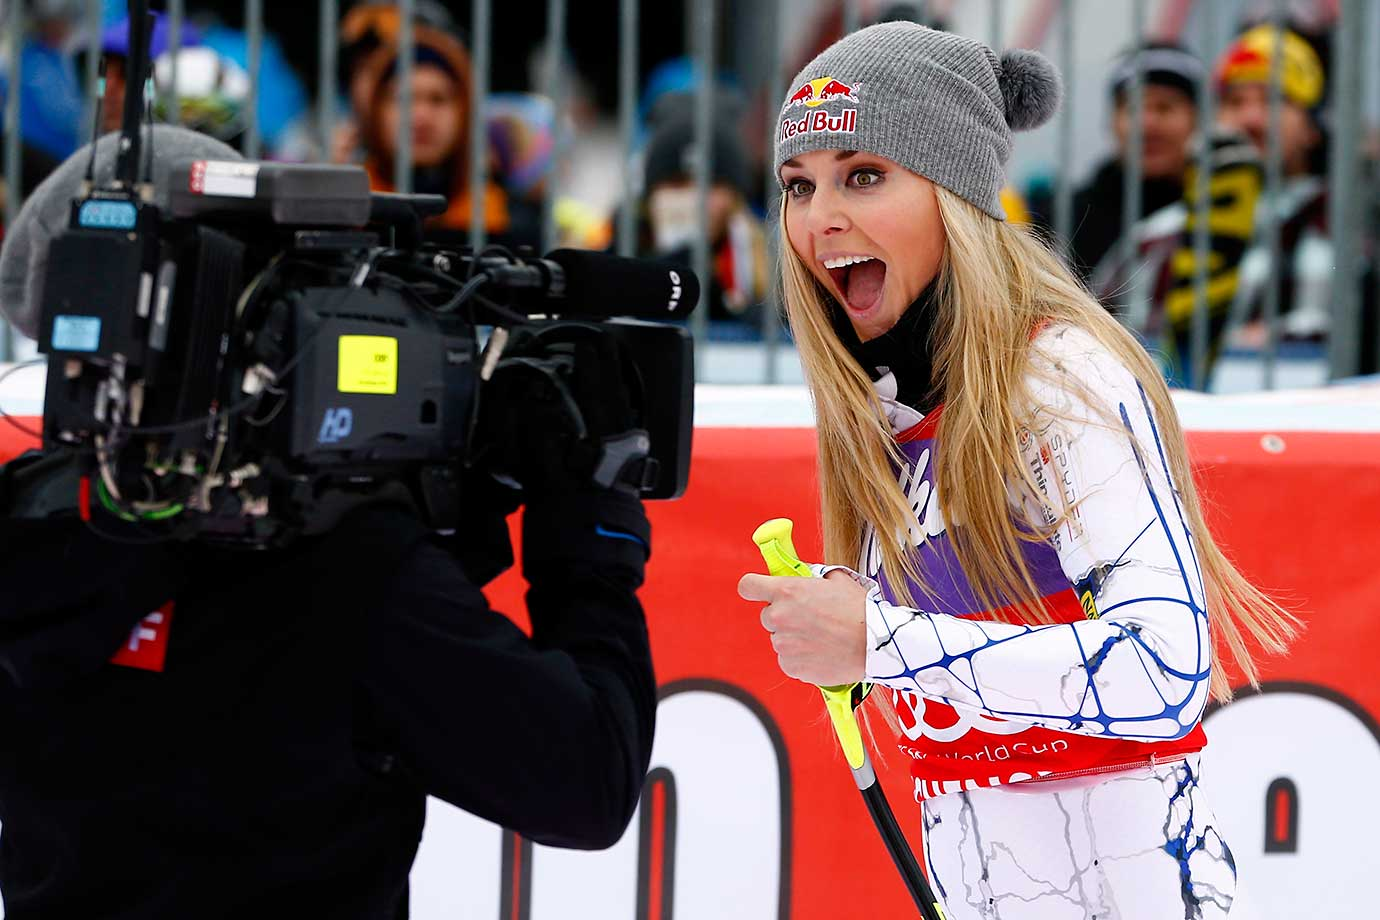 Lindsey Vonn after finishing first during the Alpine Ski World Cup Downhill on Jan. 09, 2016 in Austria.